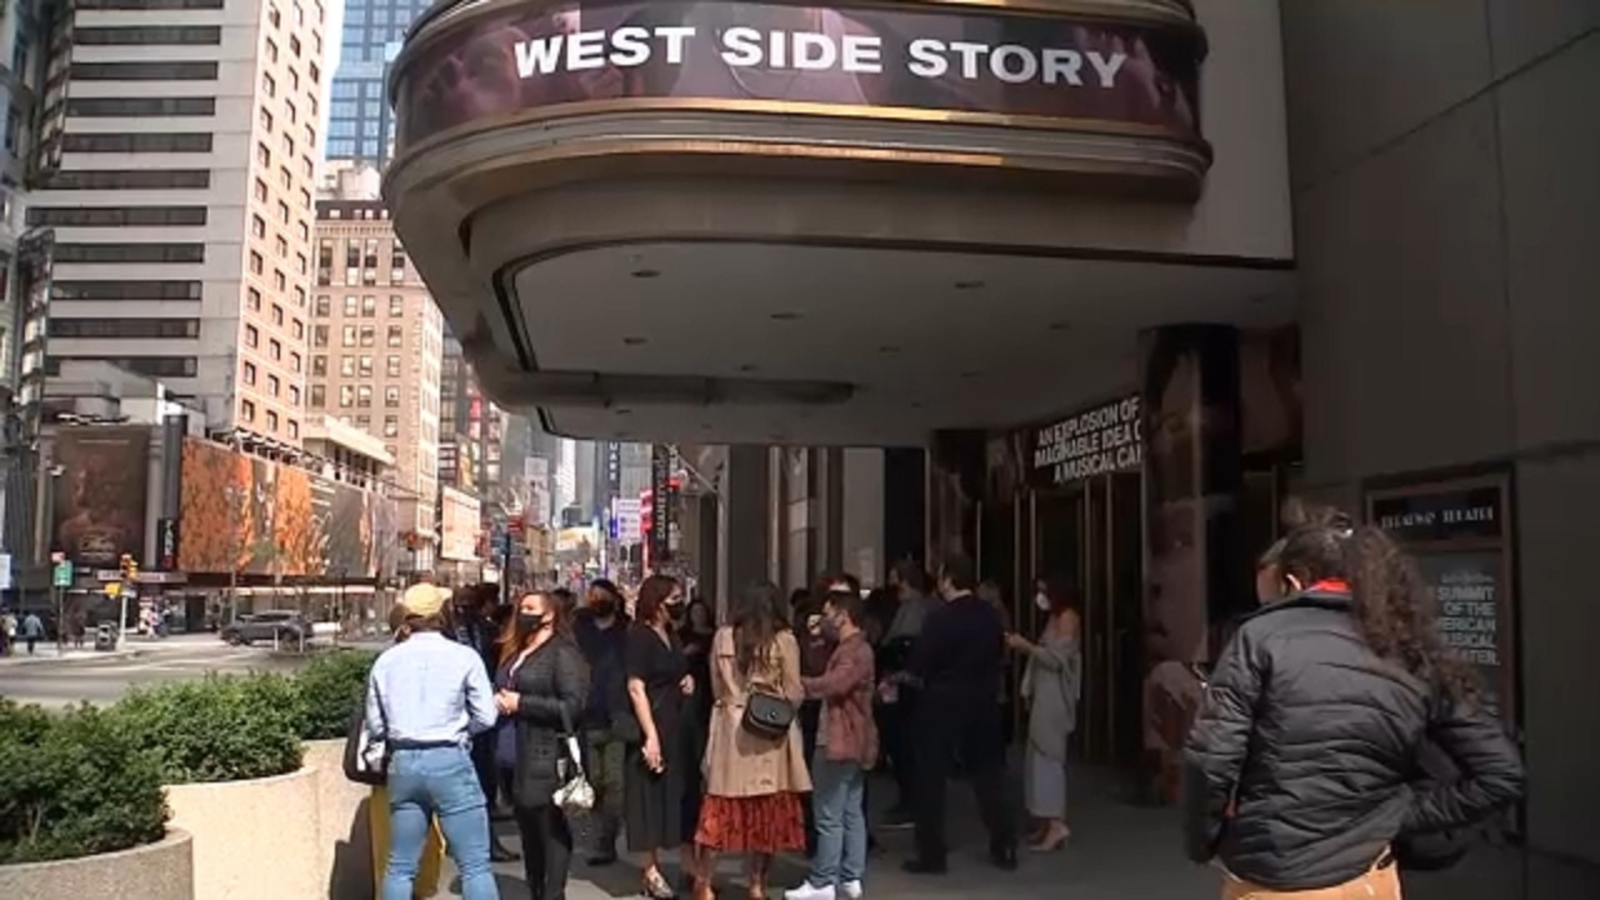 Second weekly pop-up performance held at Broadway theater